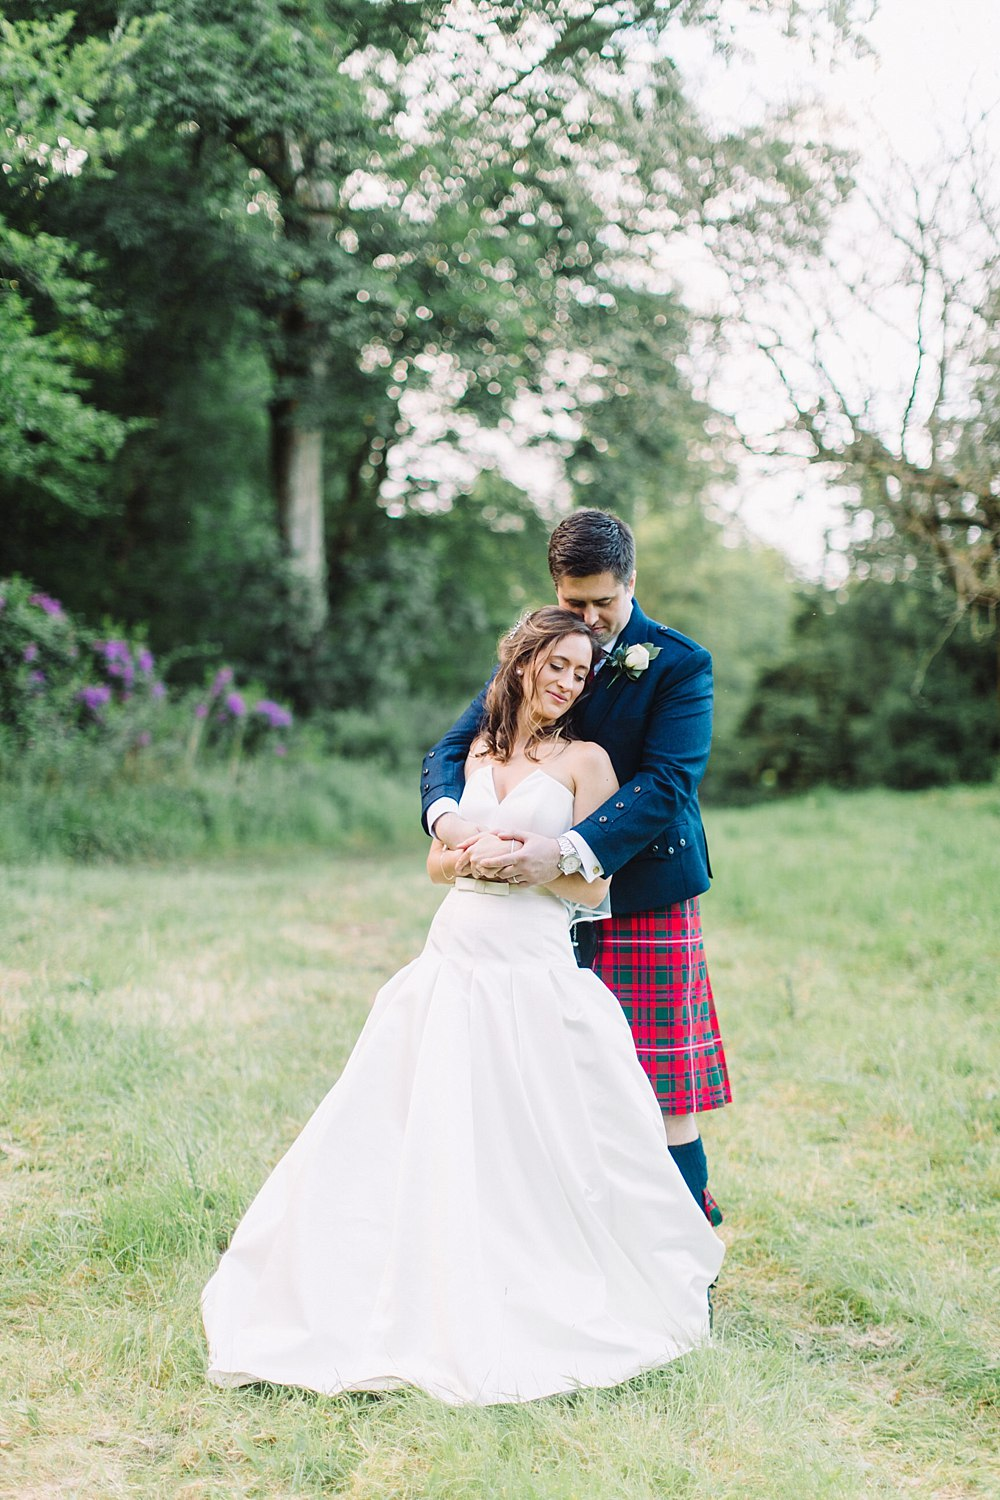 creative romantic relaxed light airy wedding photographers Scotland 2-10.jpg